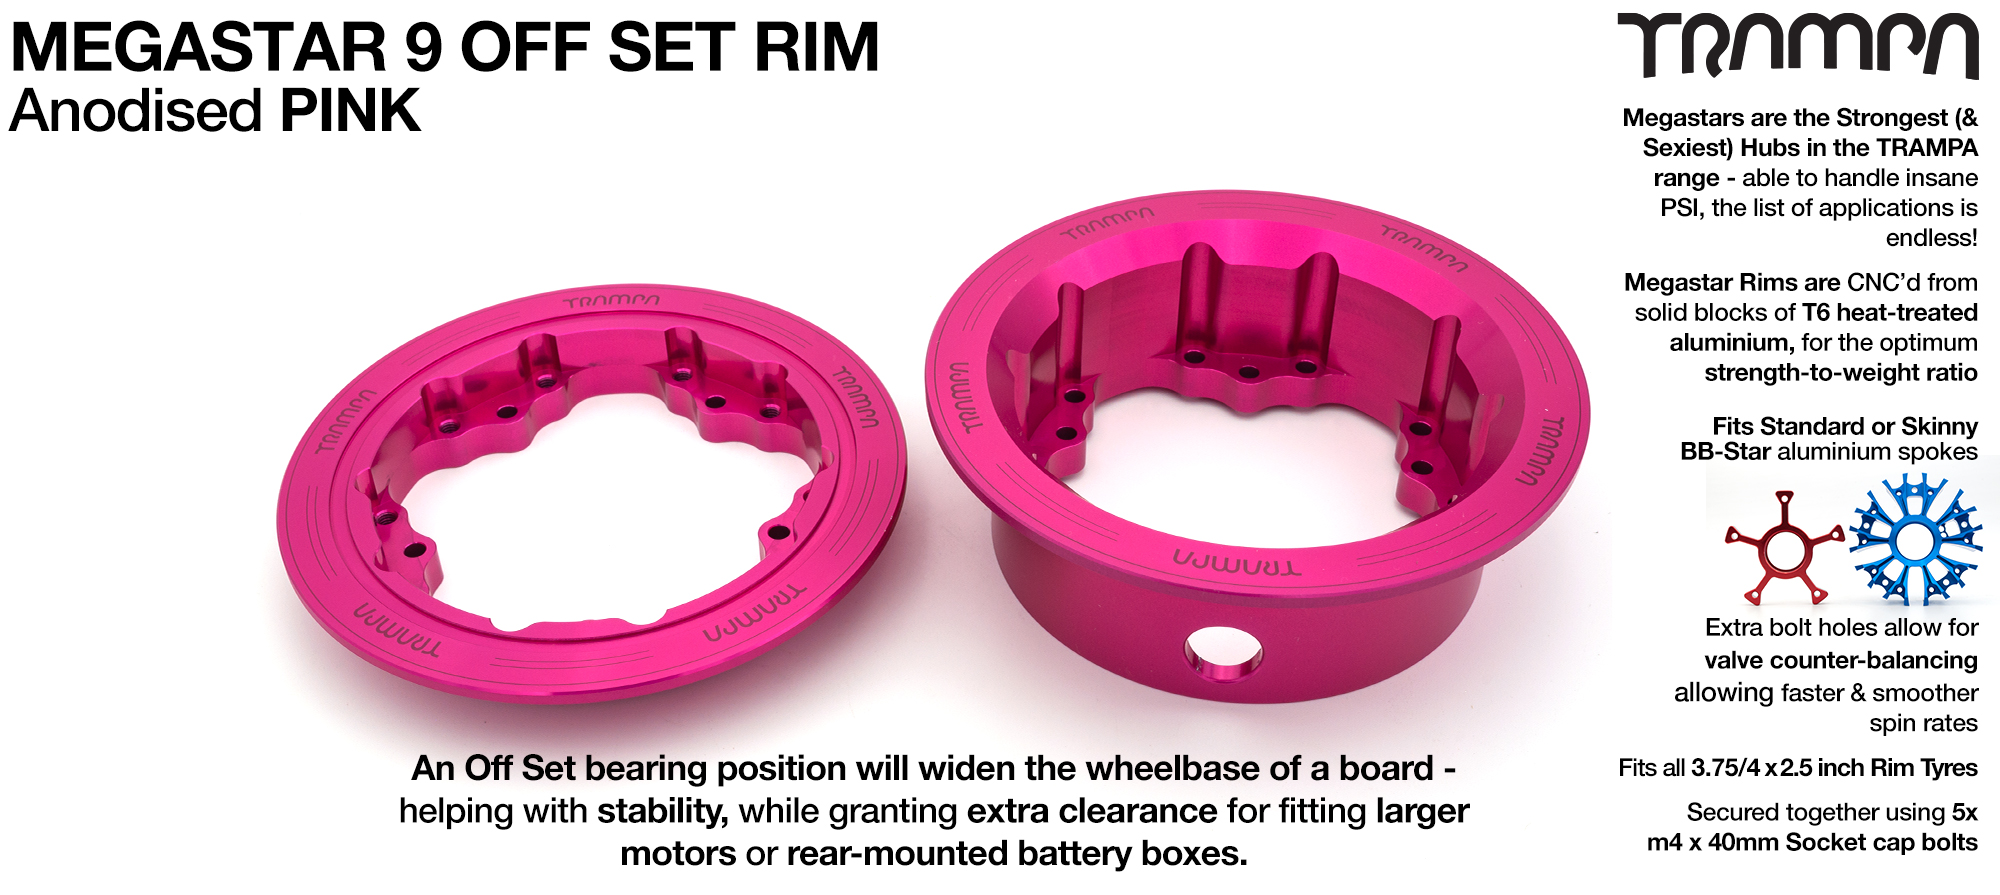 9 Inch DEEP DISH Off-Set MEGASTAR Rims PINK - Place two on the rear of your Electric Mountainboard for extra Grip & Top Speed!  (COPY)